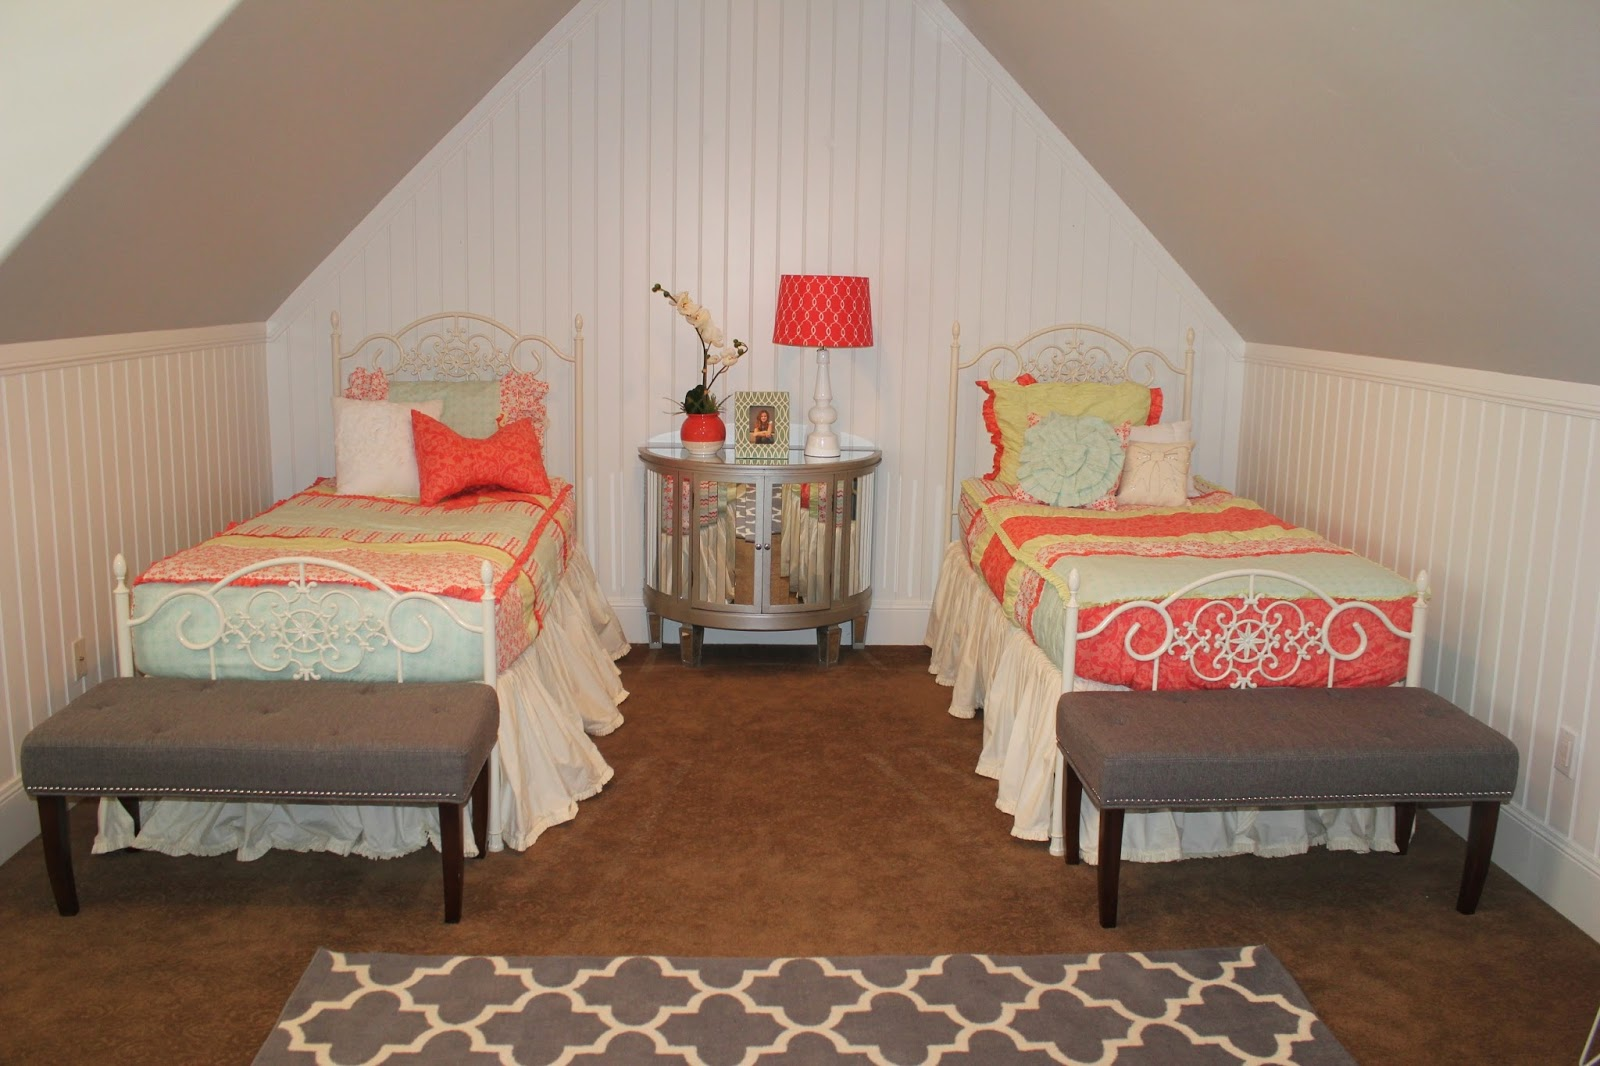 Beddy S Bed Ease May 2014